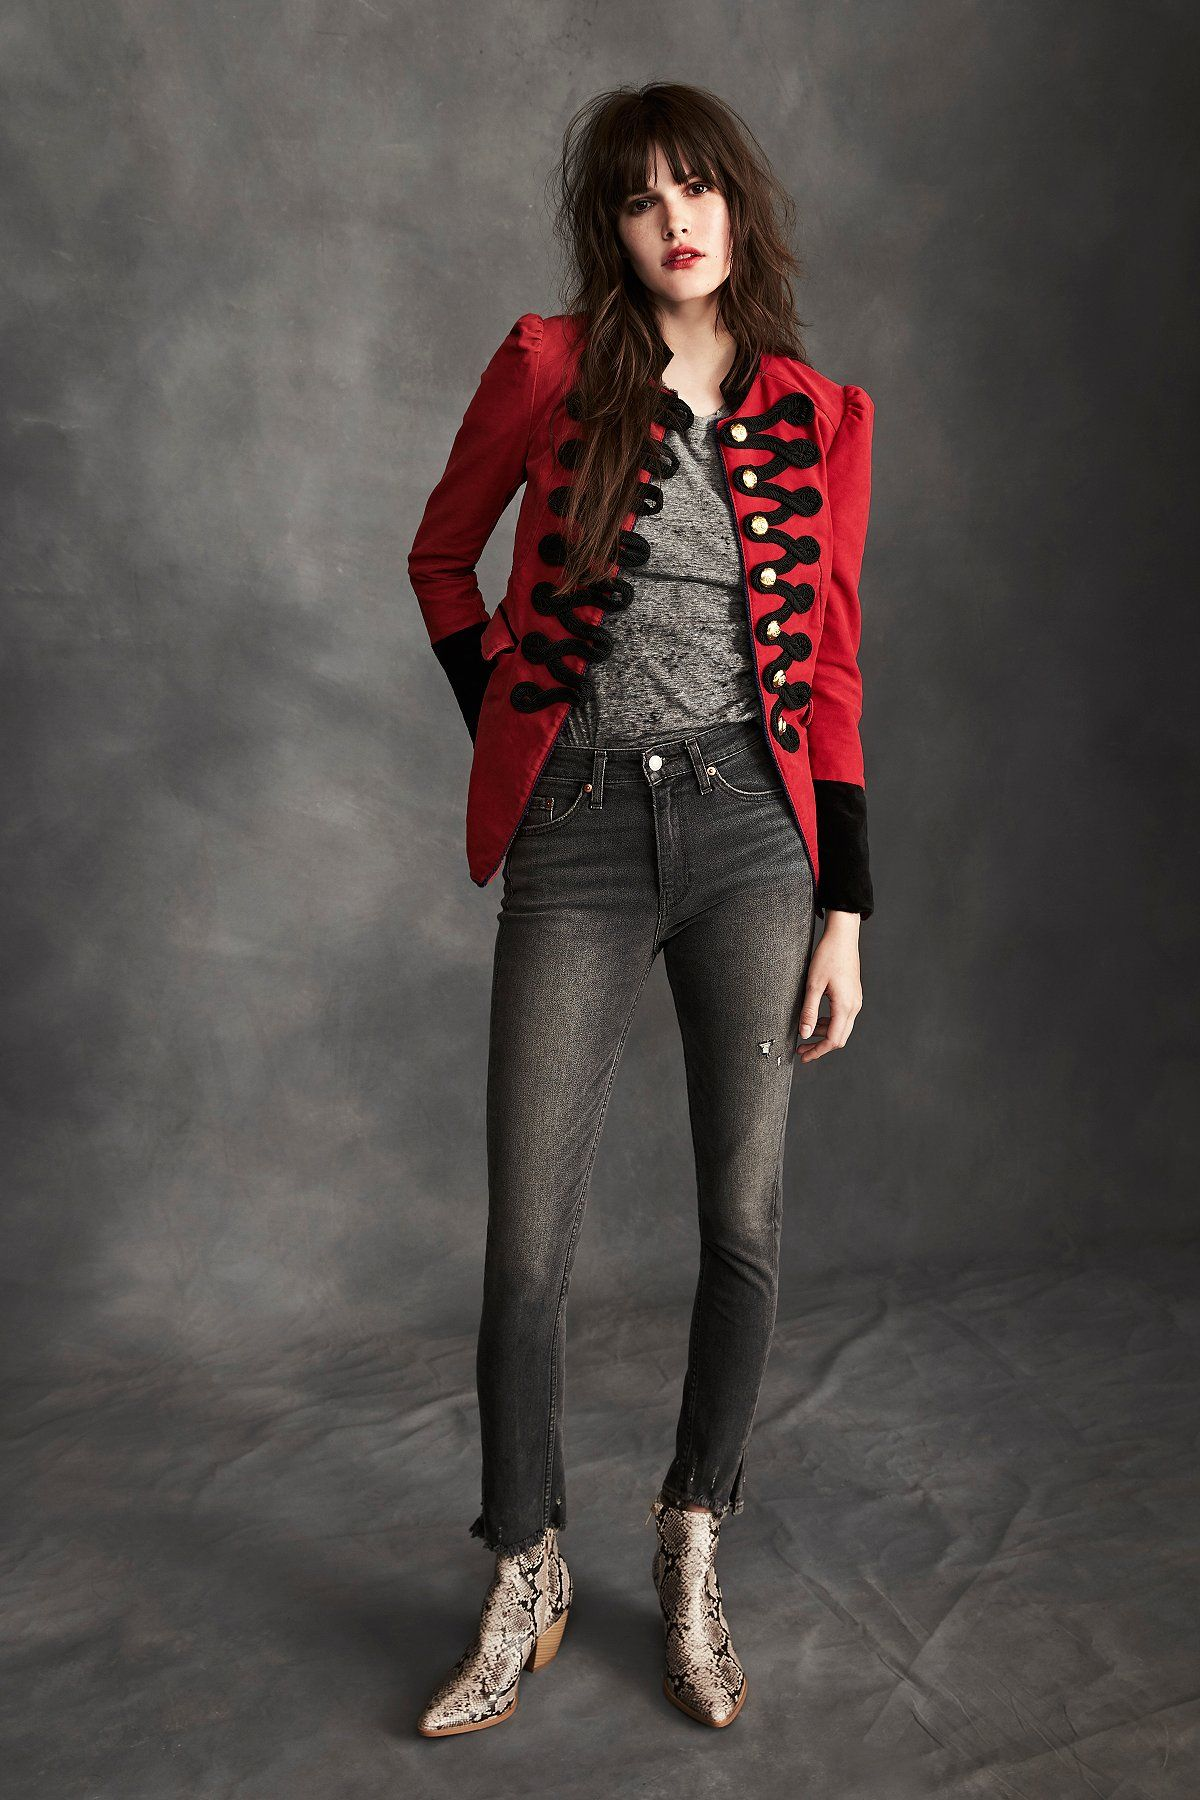 c292fed6 Levi's 721 High Rise Skinny Altered   **Fit:** May run small, we recommend  sizing up. Levi's has deconstructed the classic 721 High Rise Skinny and  altered ...